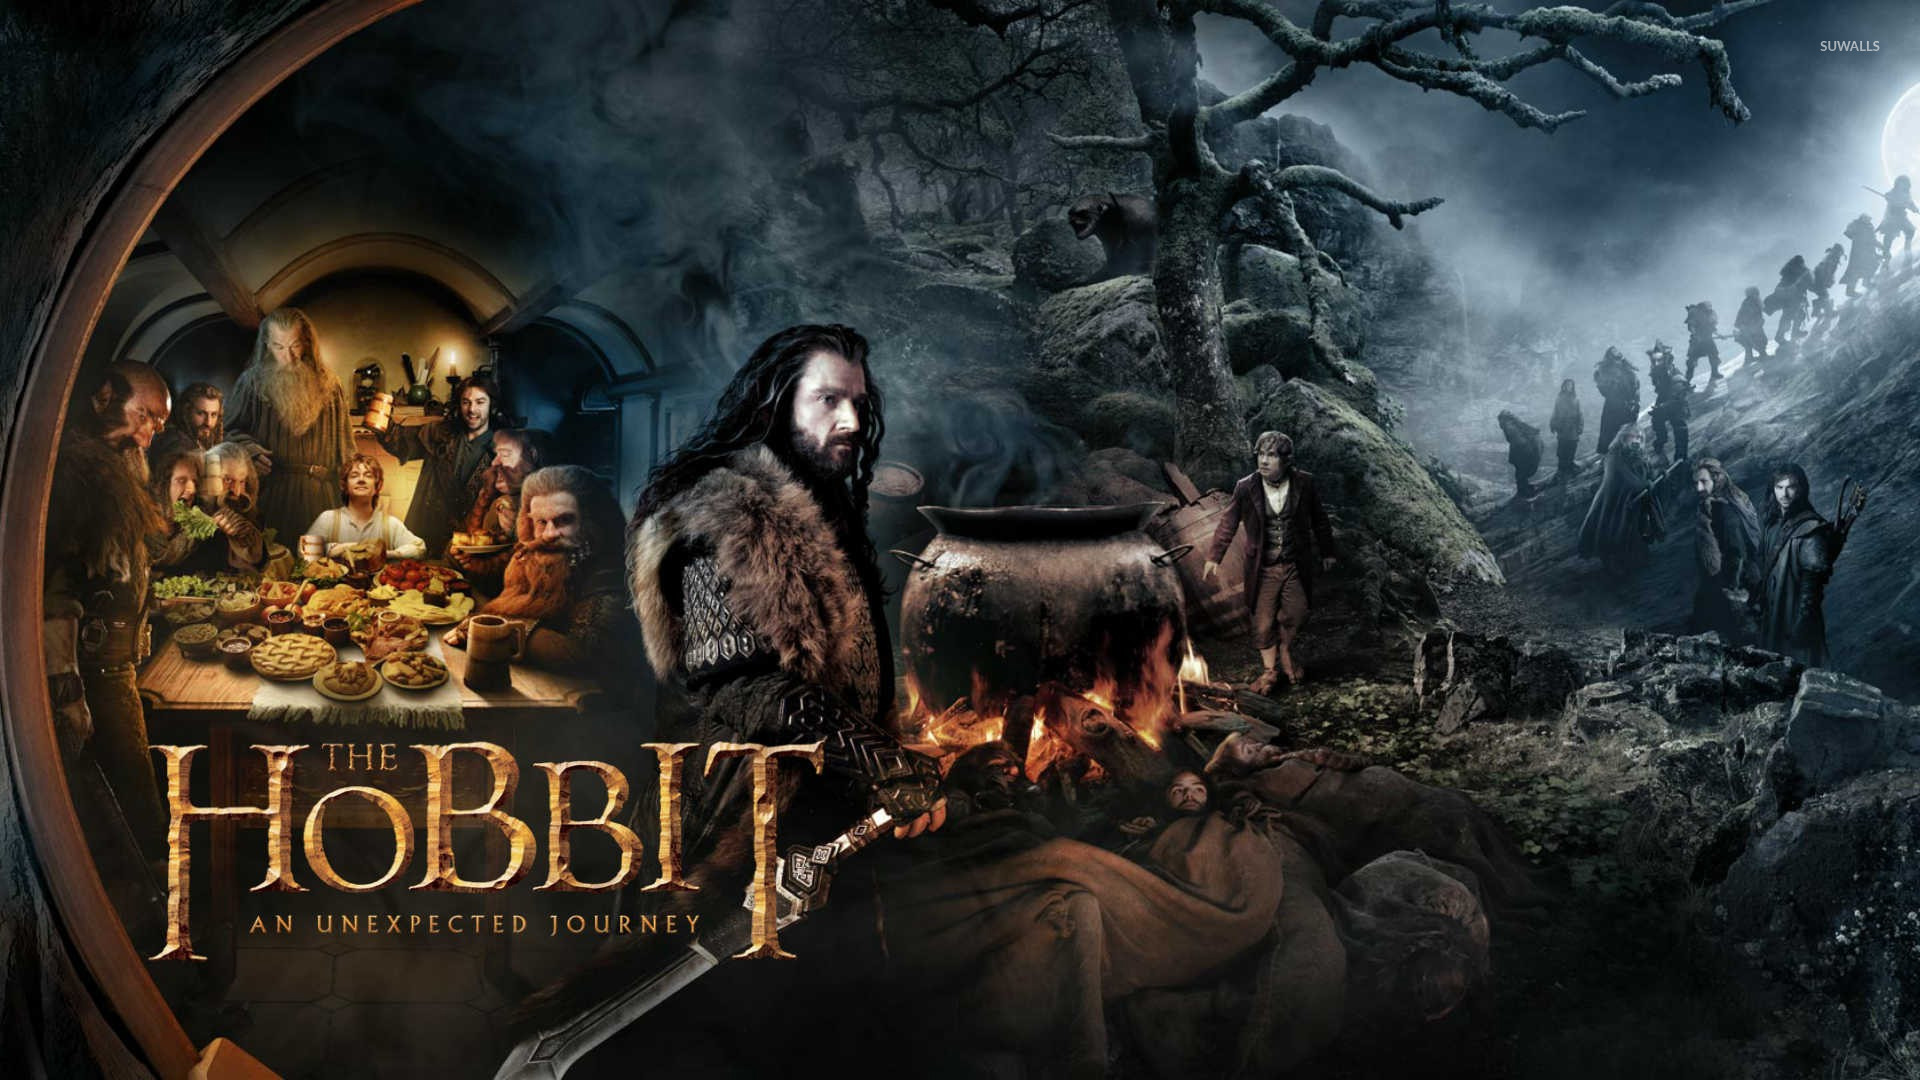 The Hobbit An Unexpected Journey [7] wallpaper   Movie wallpapers 1920x1080